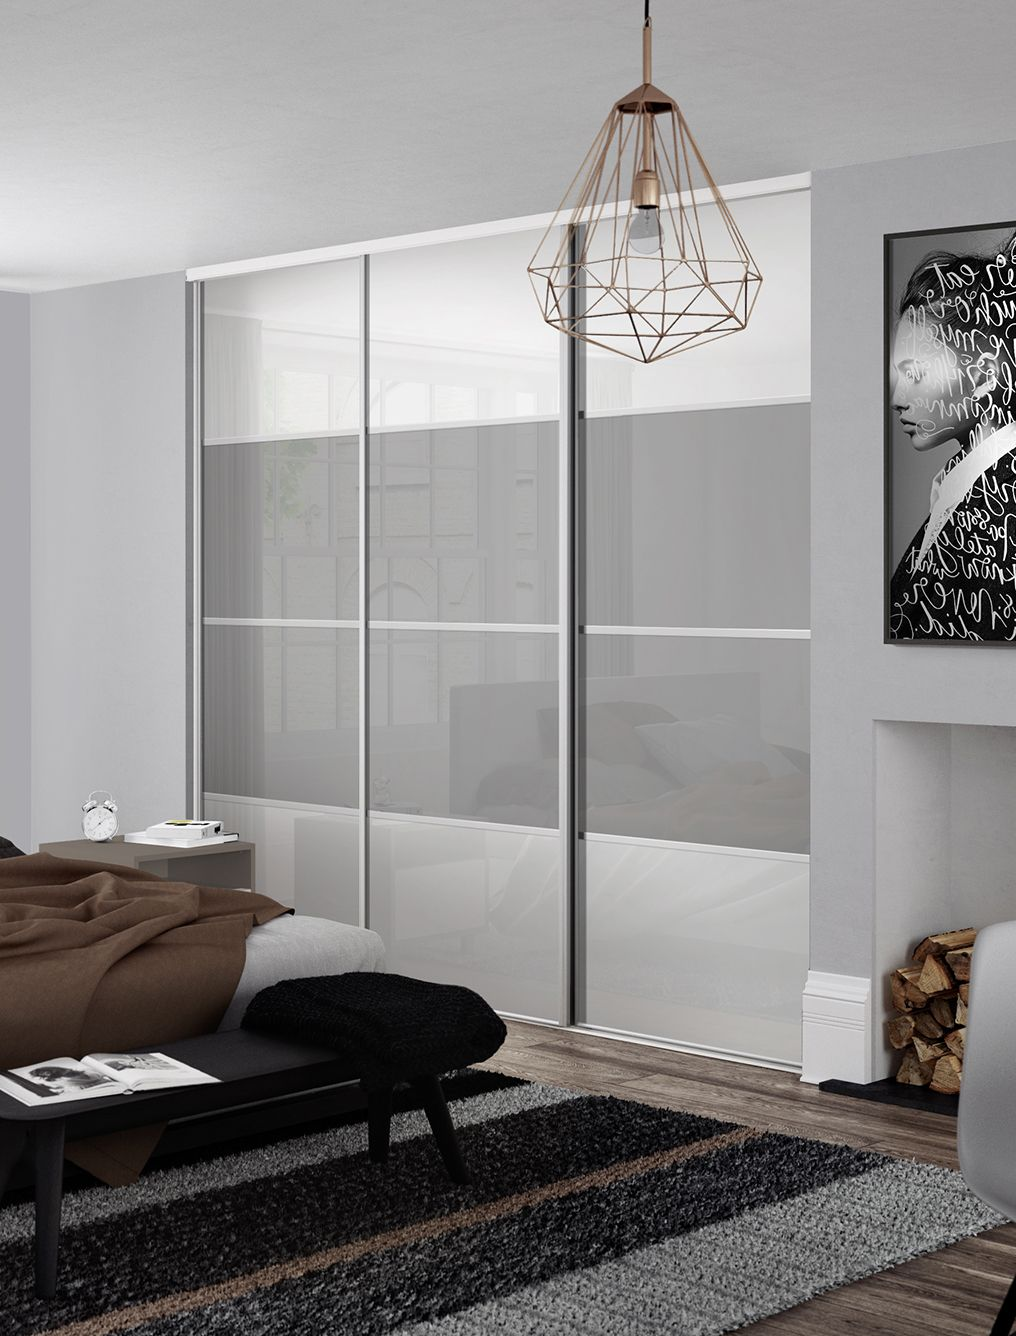 Classic 4 panel sliding wardrobe doors in pure white and for 4 door wardrobe interior designs